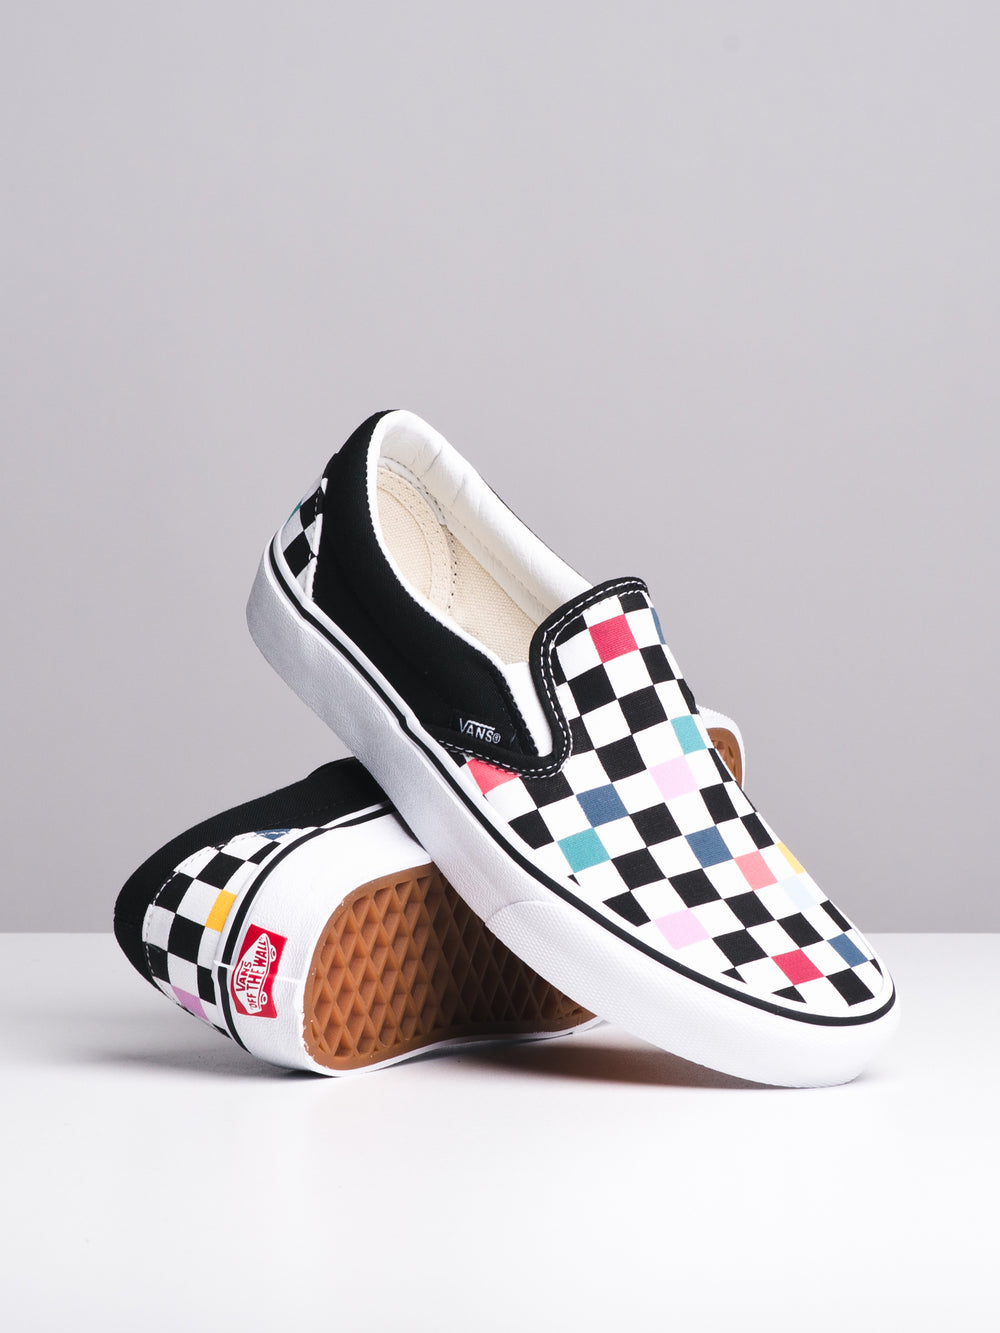 6eec03a3d212d7 WOMENS CL SLIP ON - PARTY CHECKER. VANS